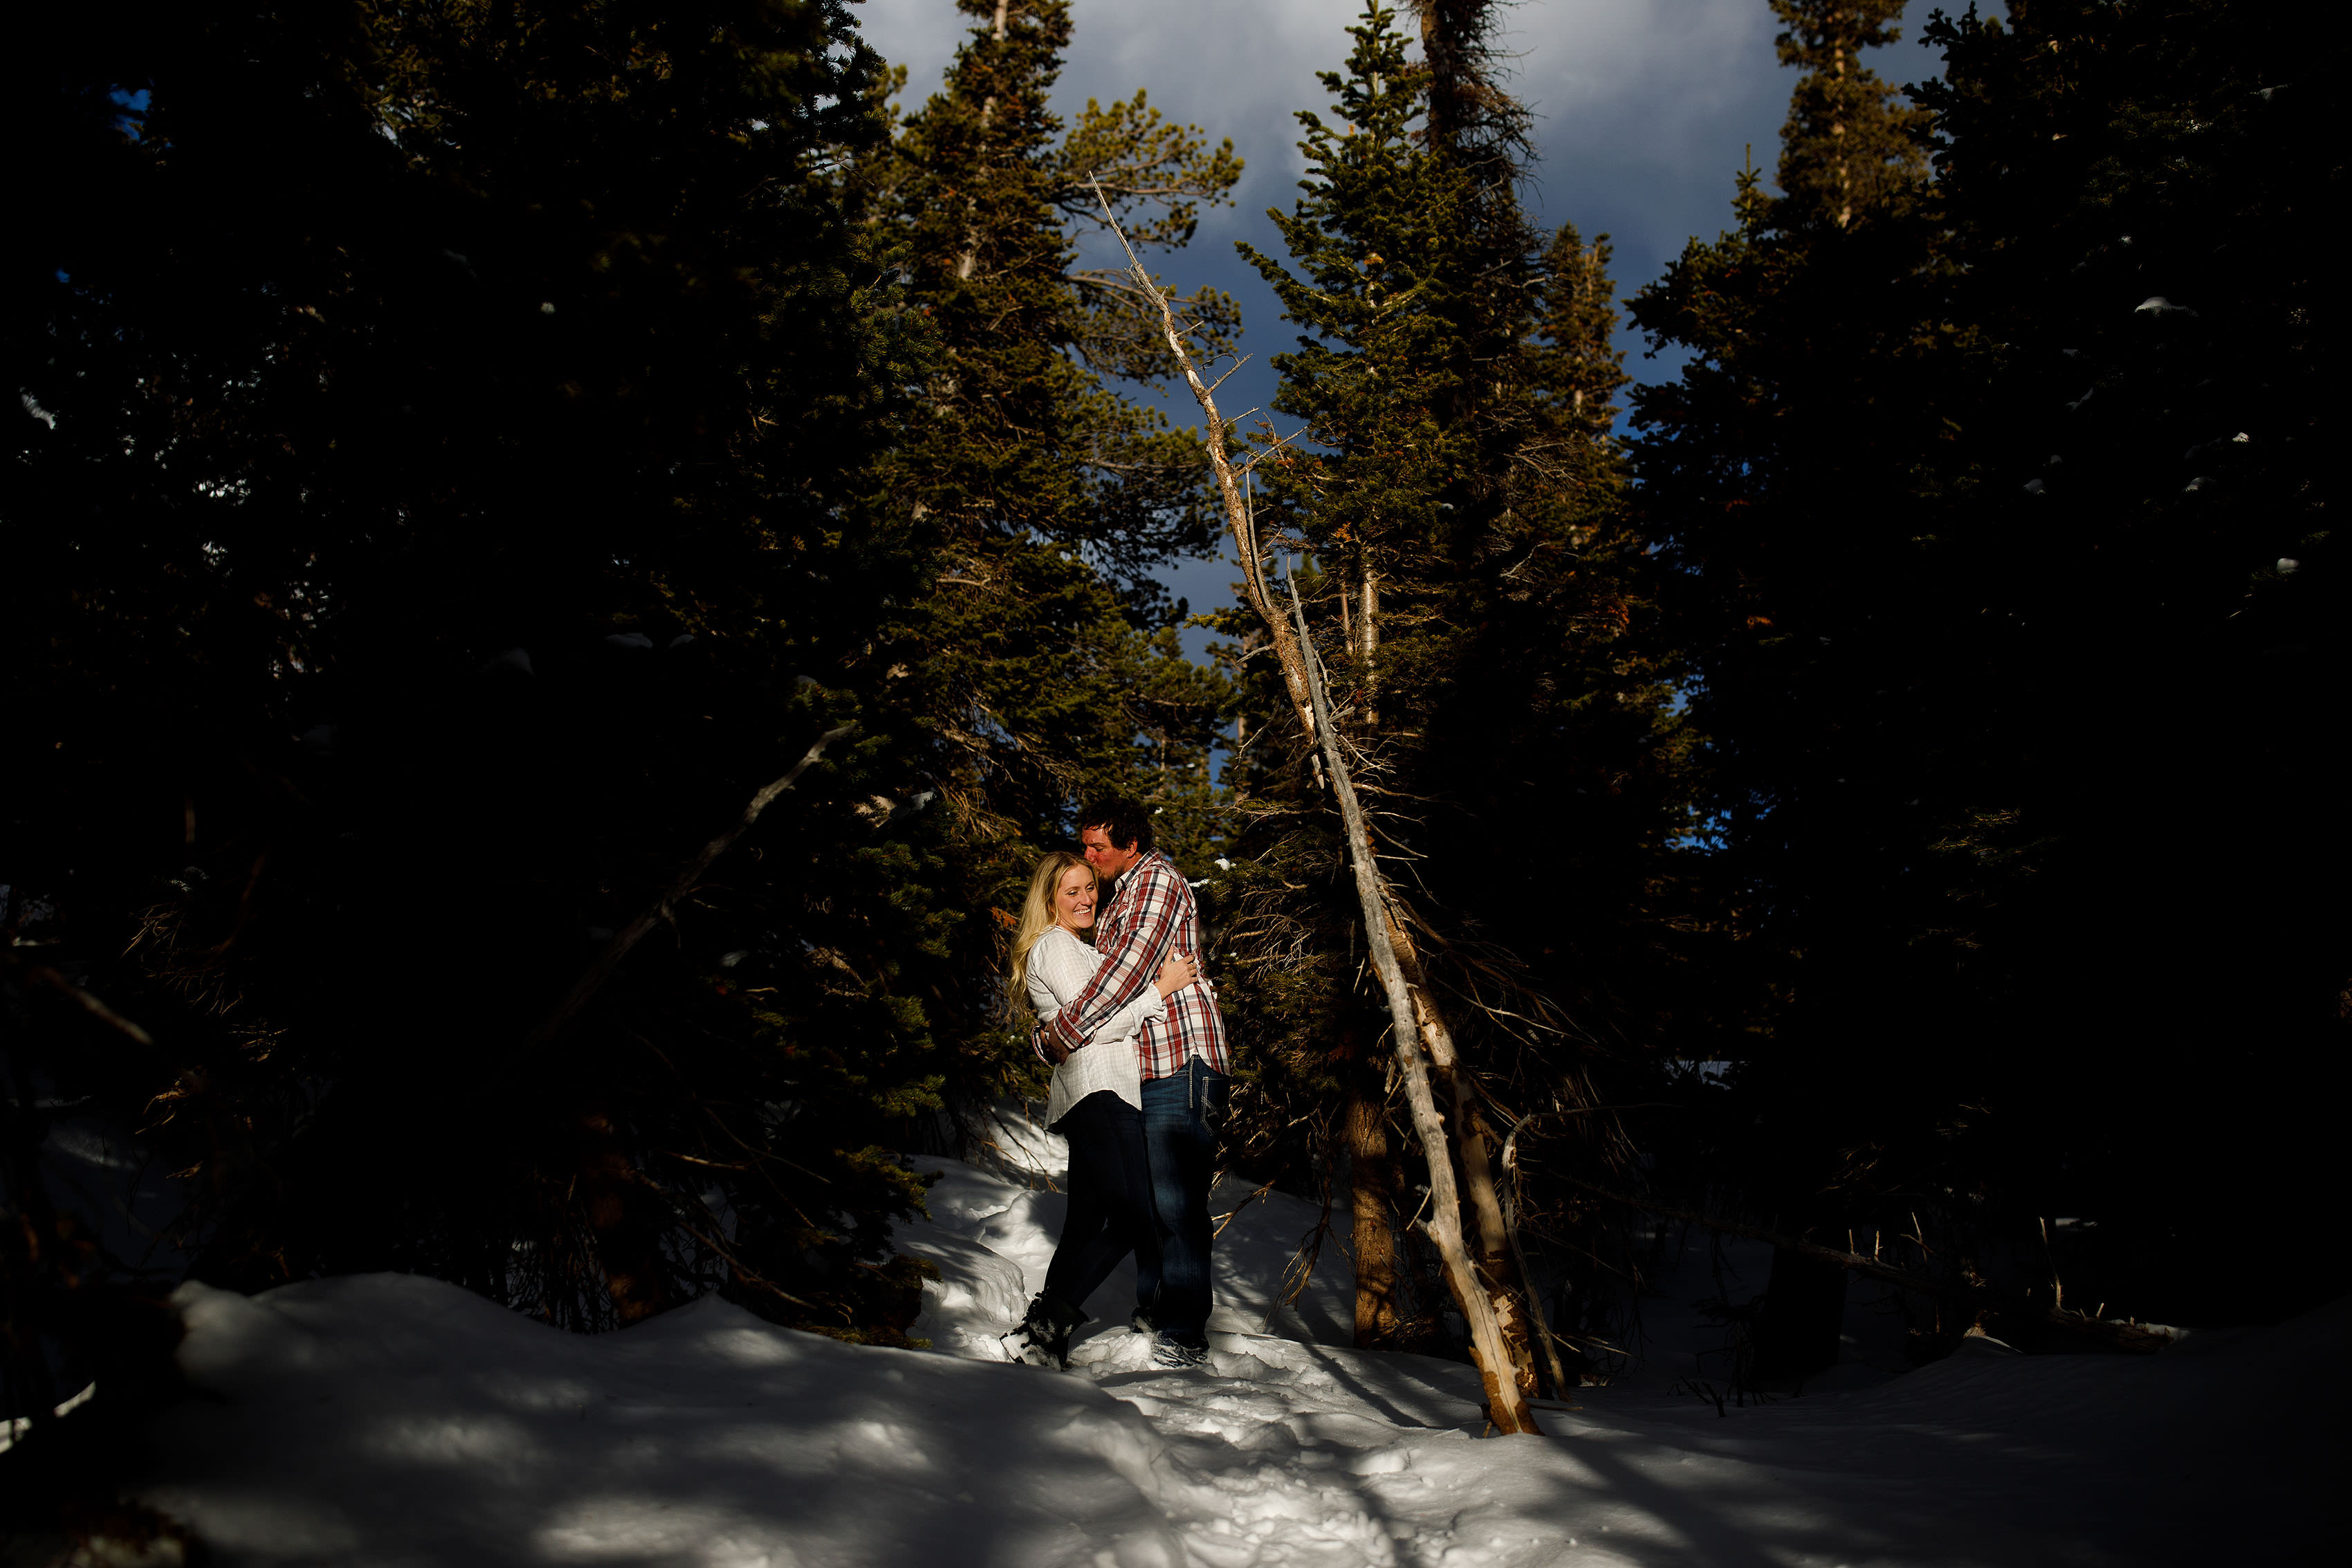 Aaron kisses Meaghan in the trees at Brainard Lake during their winter engagement session in Colorado